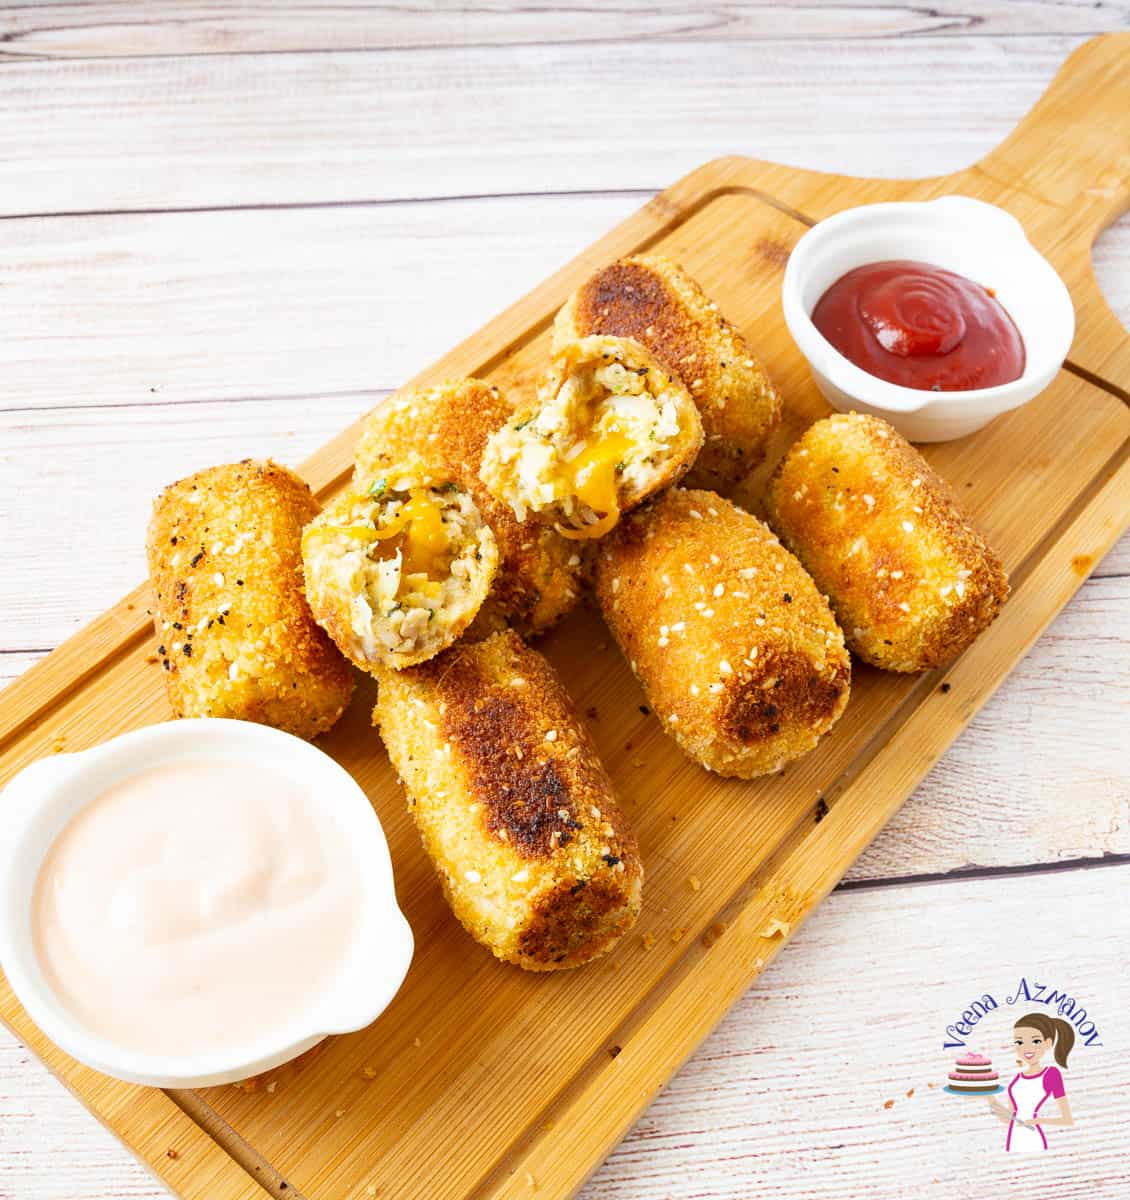 Chicken croquettes with dipping sauces on a wooden board.